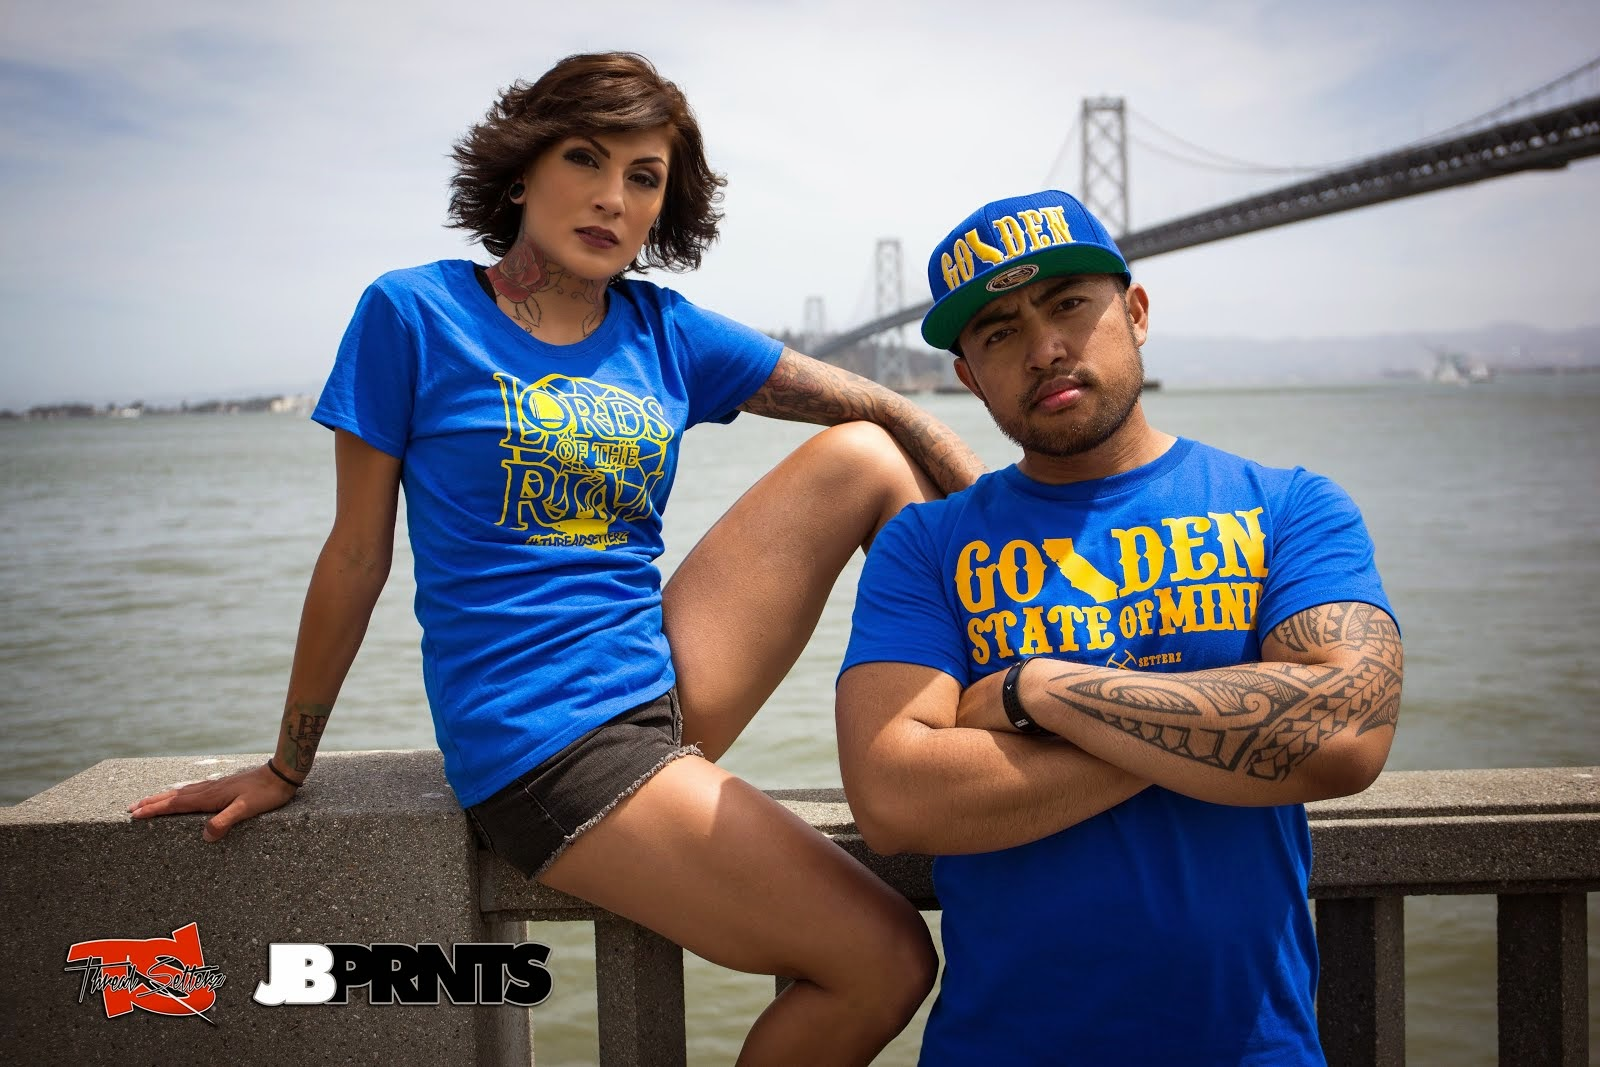 JBPRNTS x Threadsetterz San Francisco Photoshoot